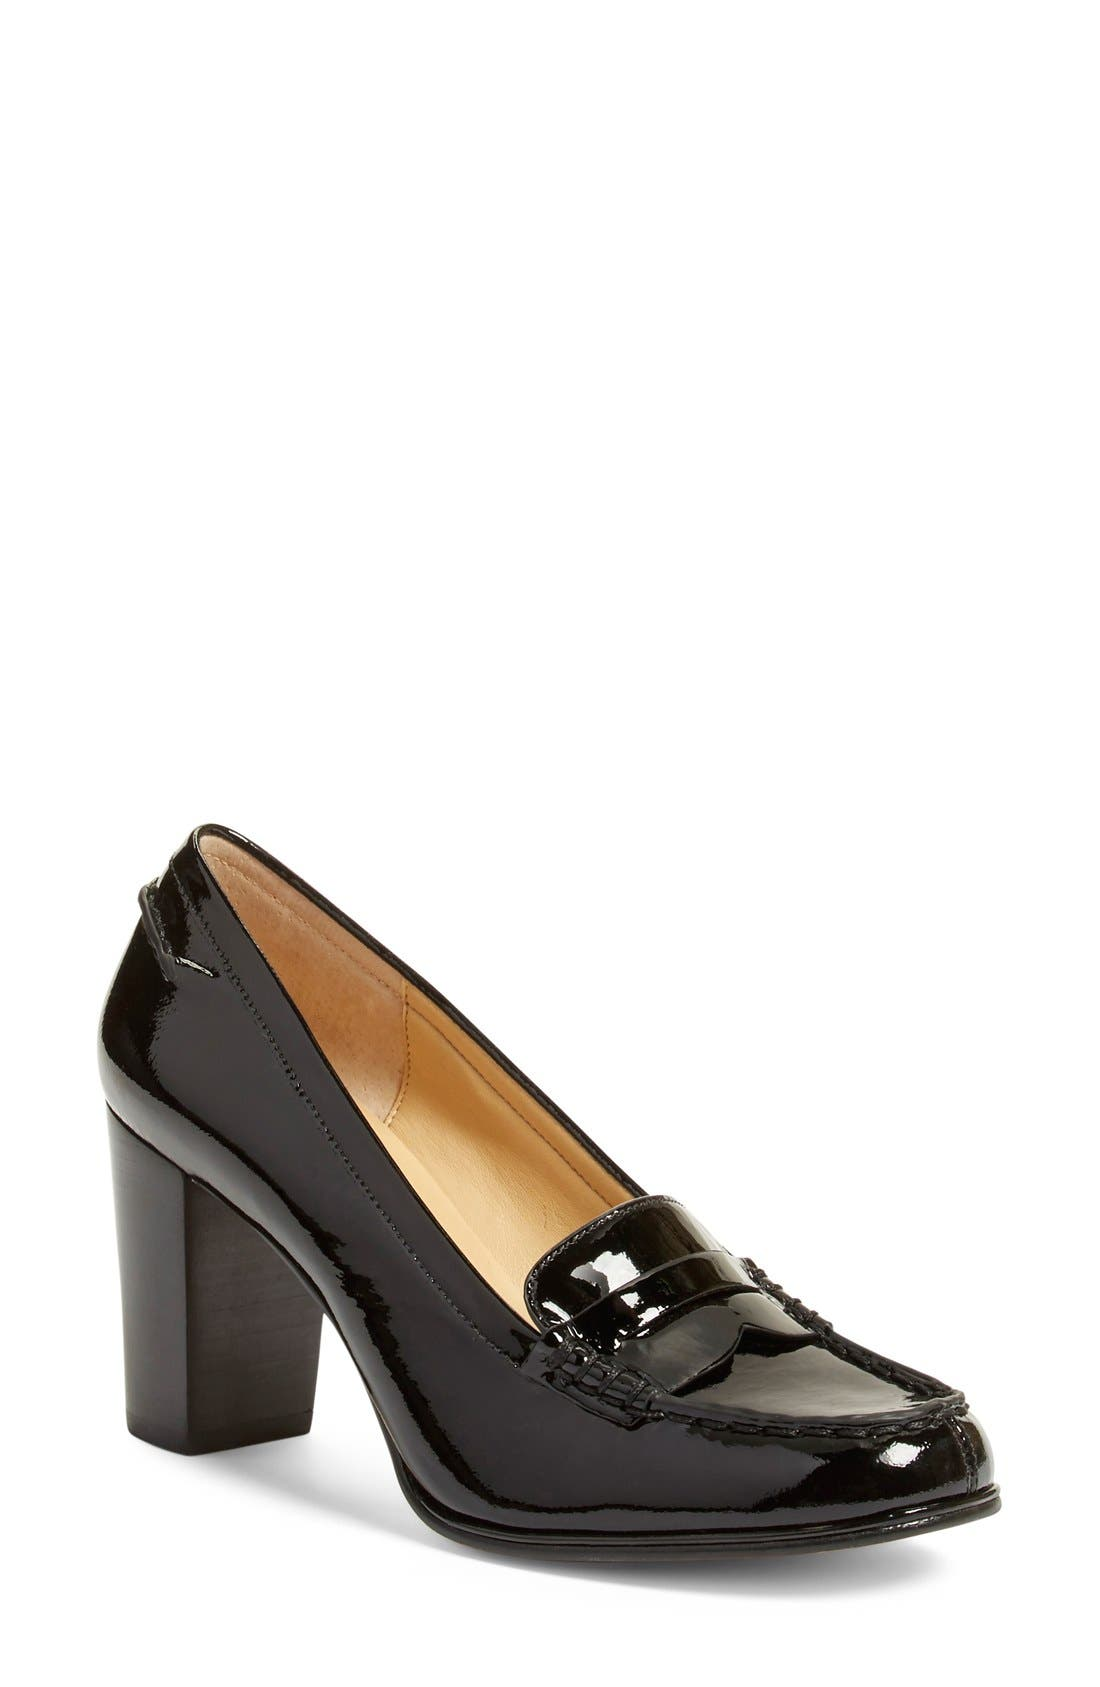 Main Image - MICHAEL Michael Kors 'Bayville' Loafer Pump